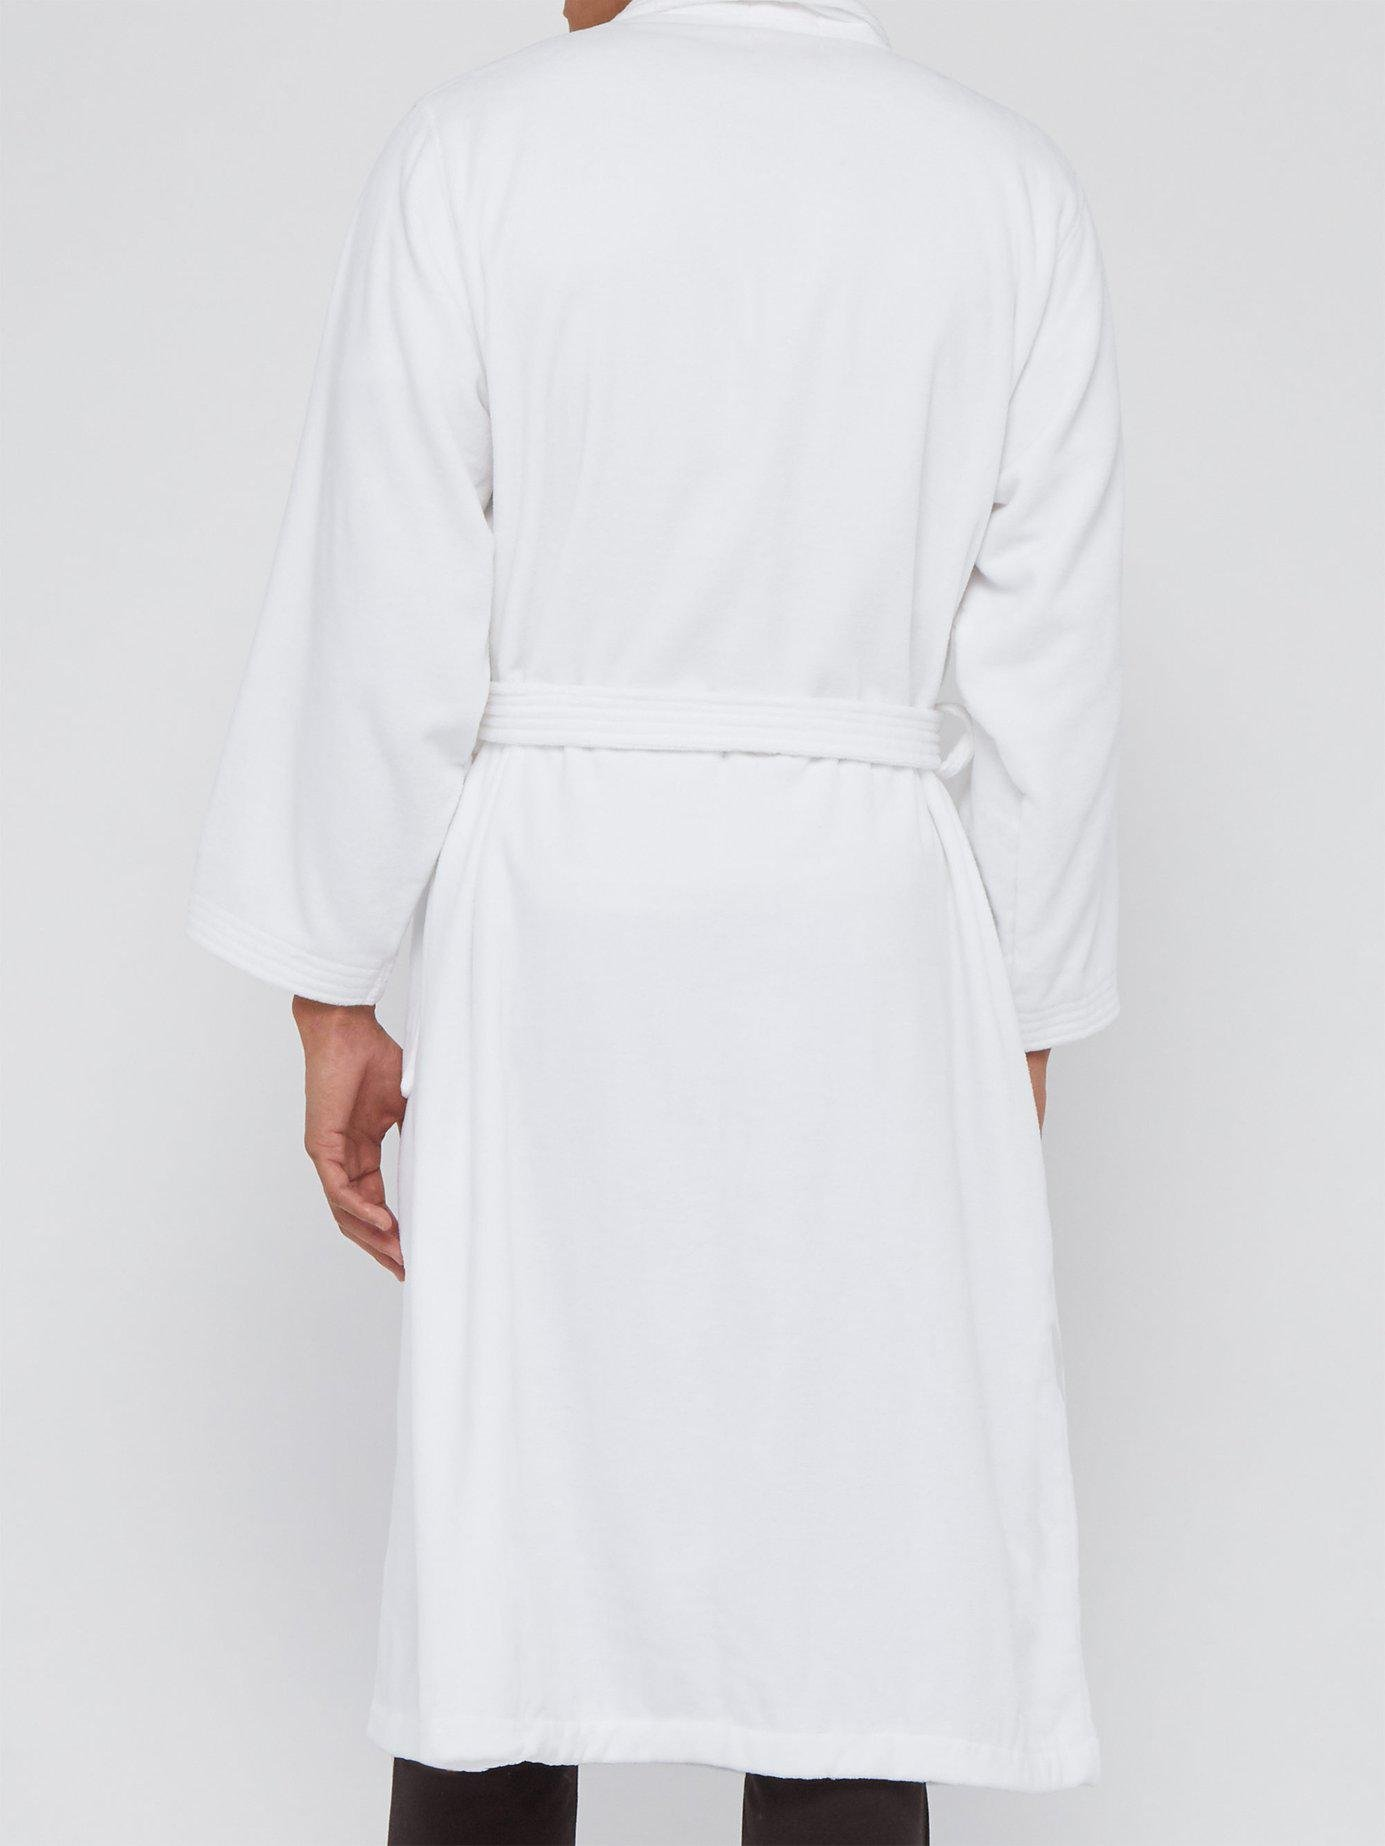 Derek Rose - White Cotton Velour Bathrobe for Men - Lyst. View fullscreen 144eee0d4